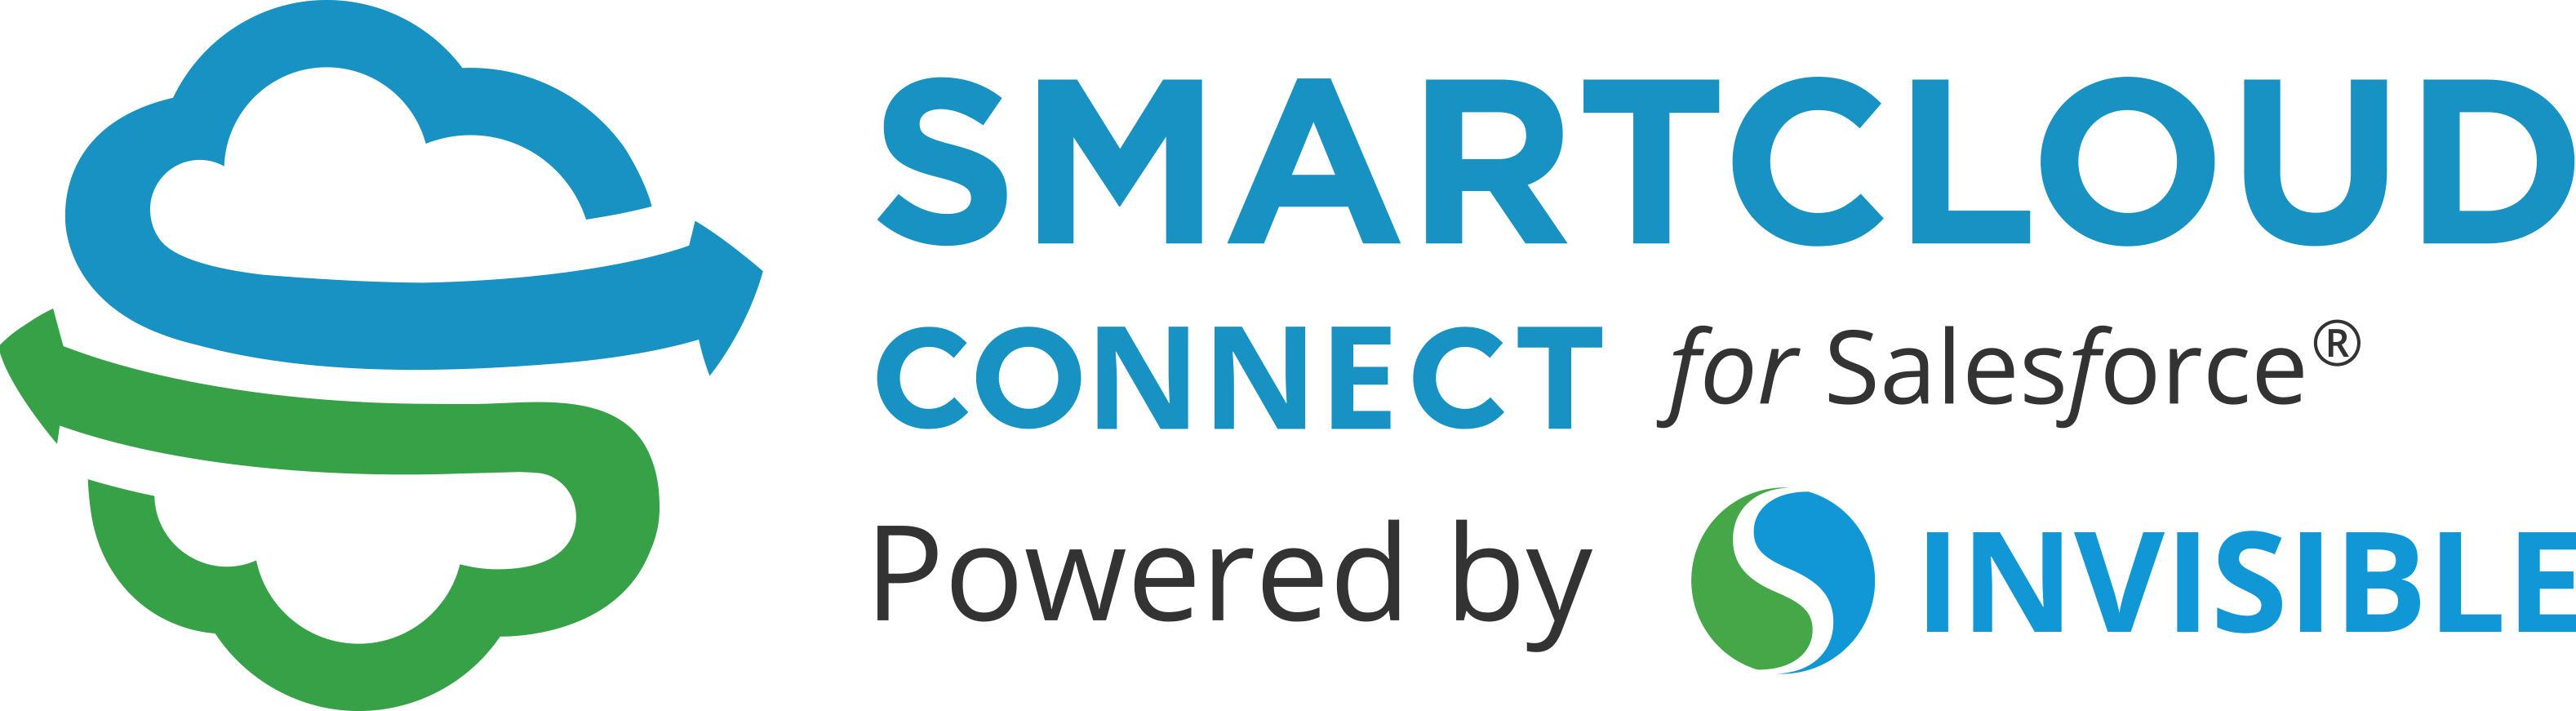 SMARTCLOUD CONNECT